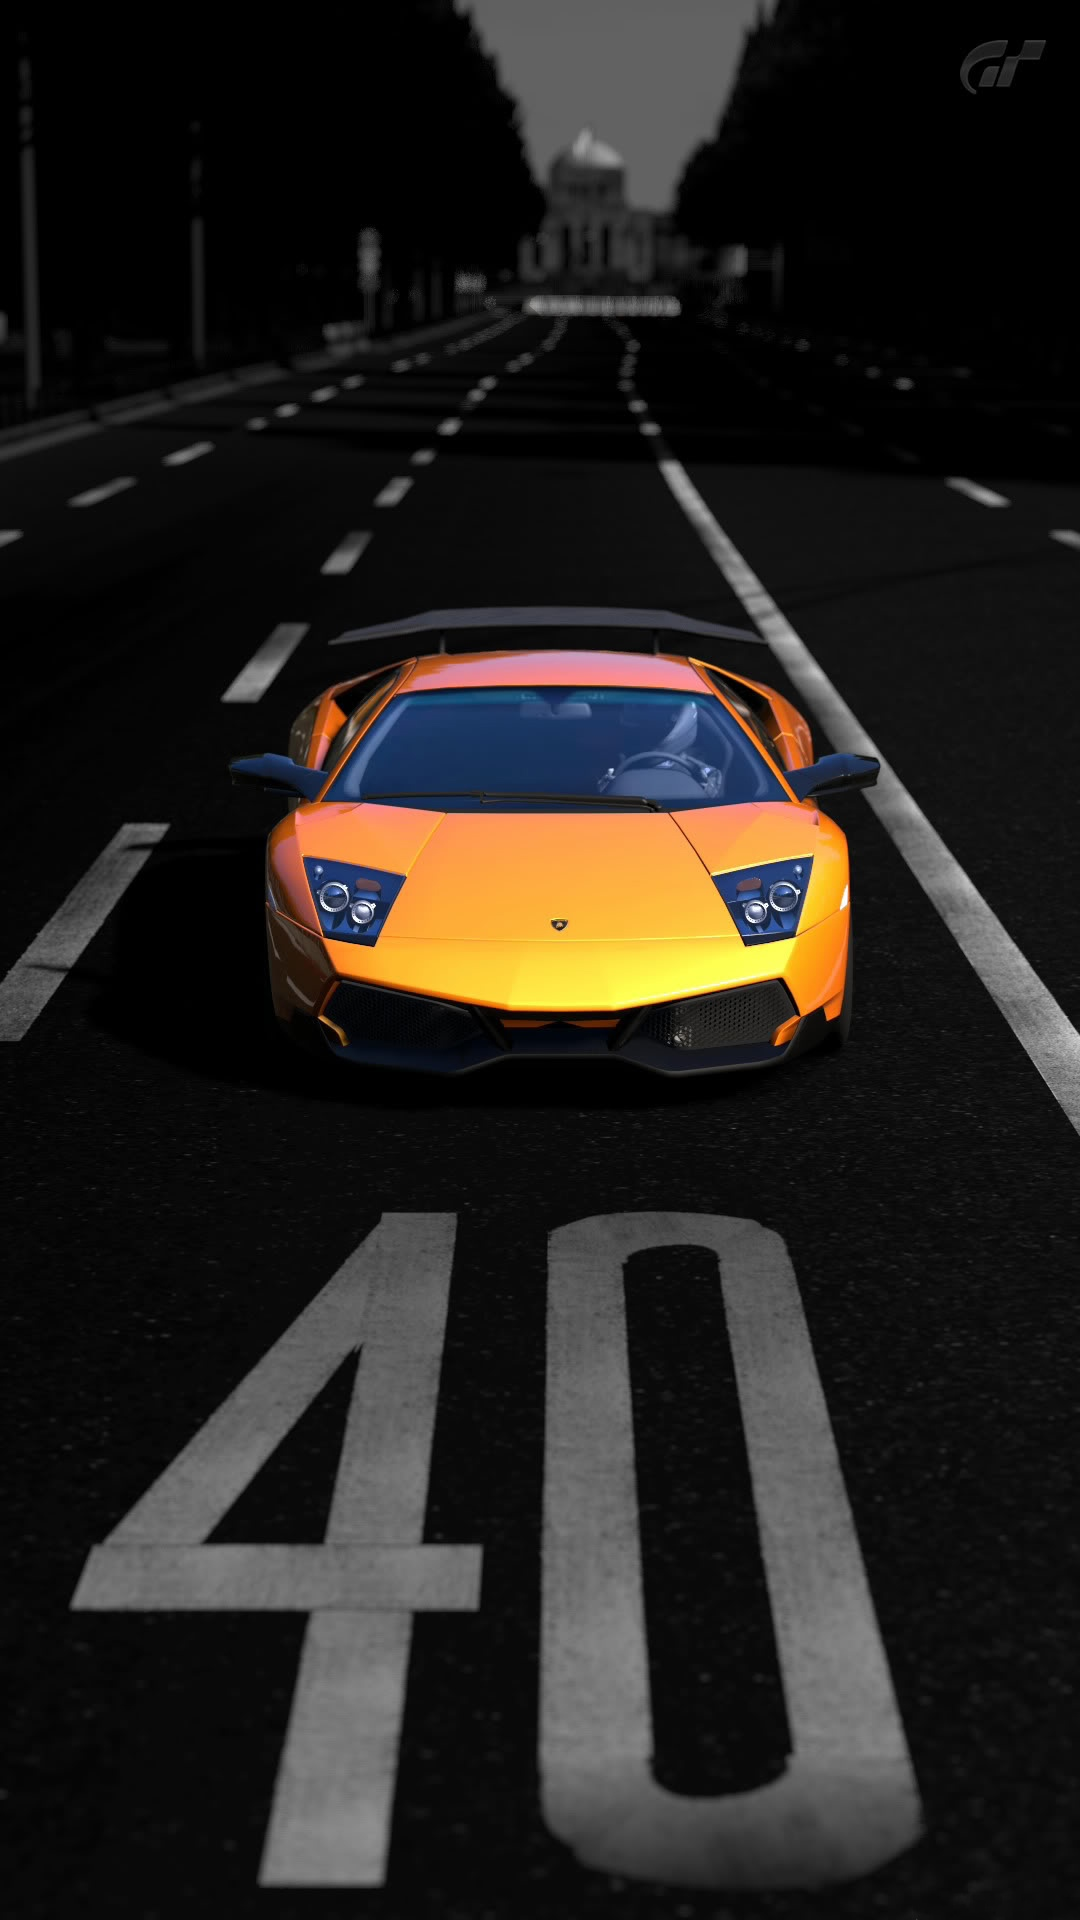 Lamborghini HTC hd wallpaper